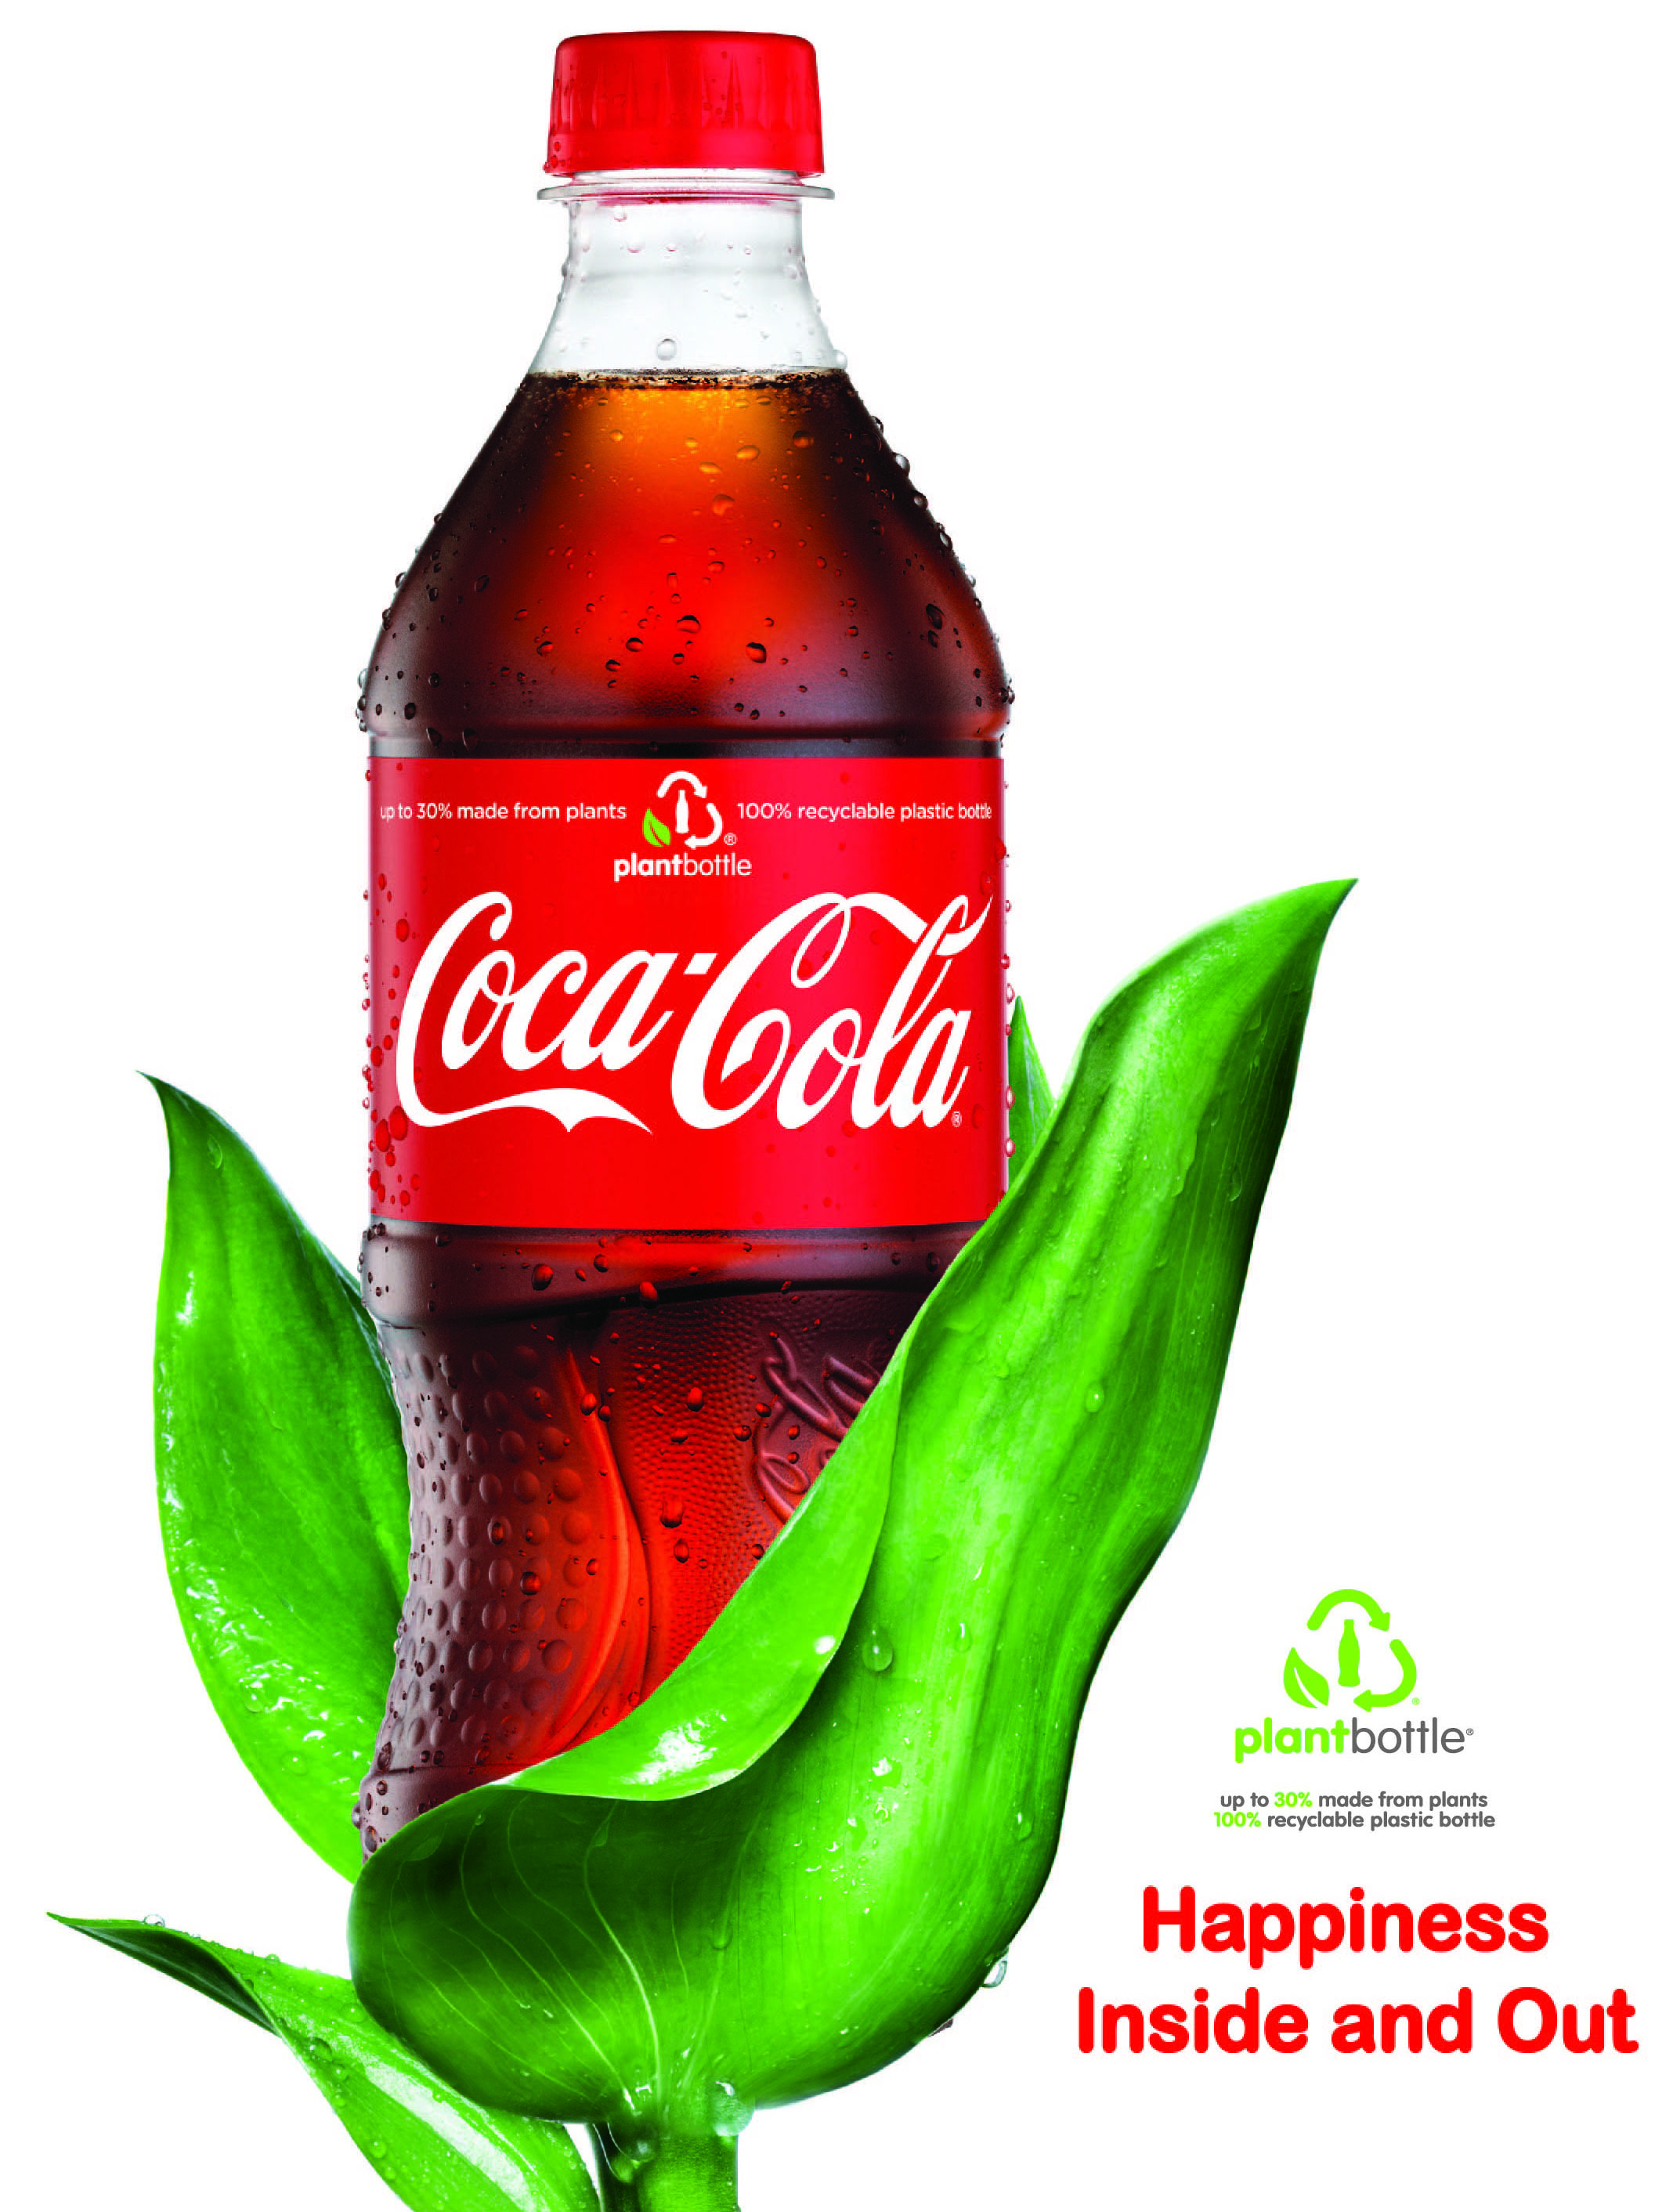 Plant Bottle Really Really Coca Cola Bottling Company